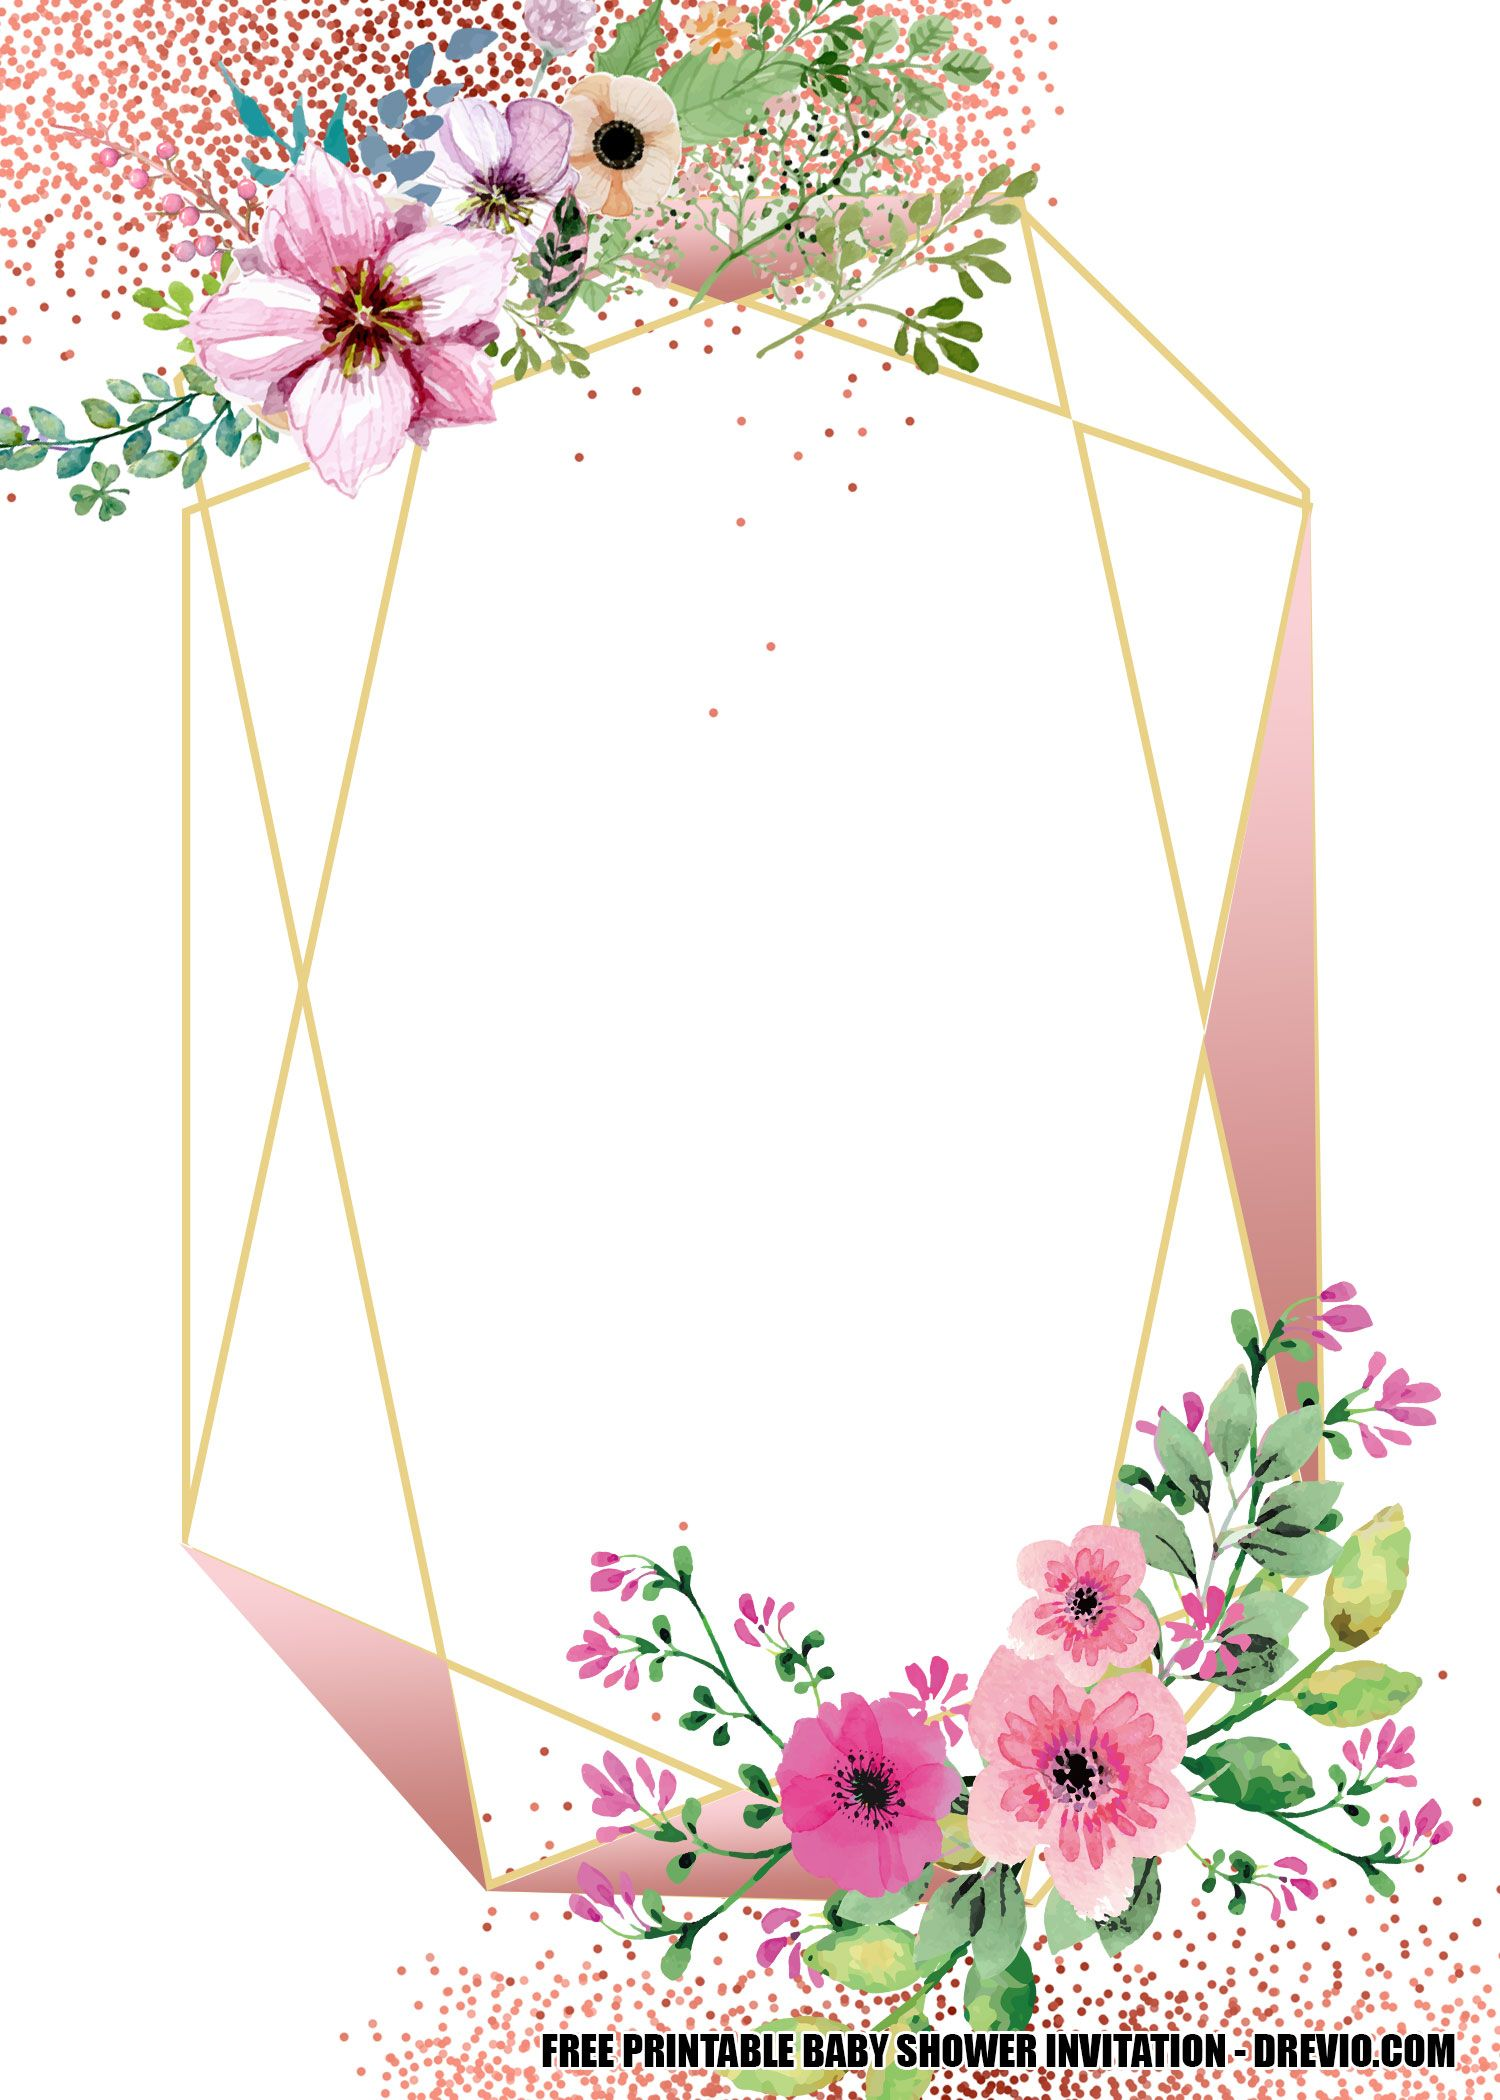 Free Floral Baby Shower Invitation Templates Floral Baby Shower Invitations Baby Shower Invitation Templates Floral Invitations Template